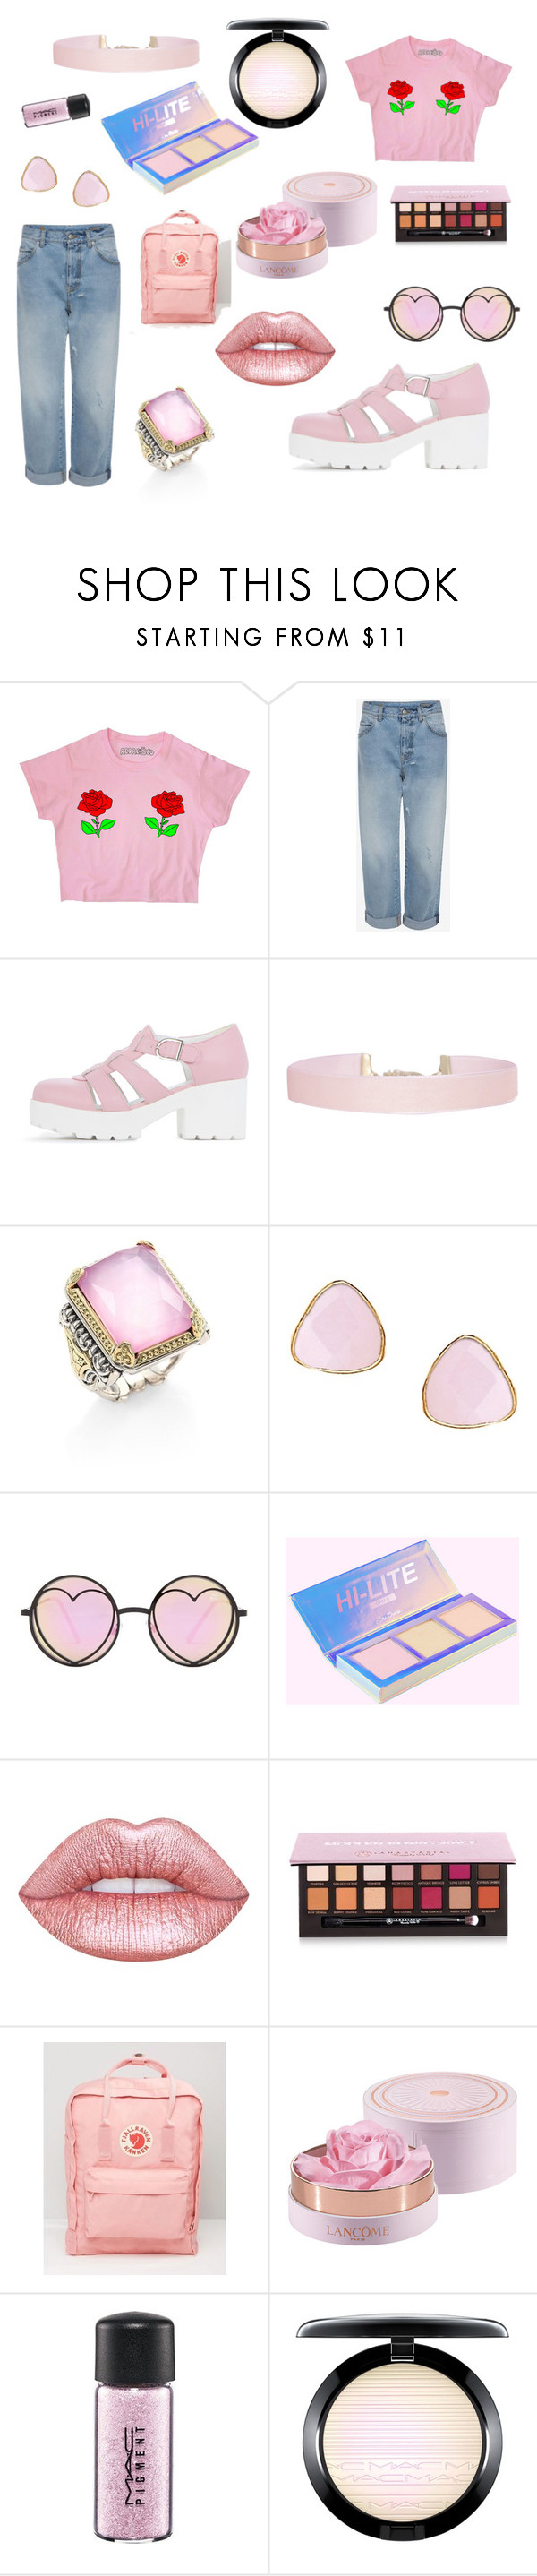 """""""Untitled #61"""" by marinpollock-1 ❤ liked on Polyvore featuring Humble Chic, Konstantino, Ottoman Hands, Betsey Johnson, Lime Crime, Anastasia Beverly Hills, Fjällräven and MAC Cosmetics"""